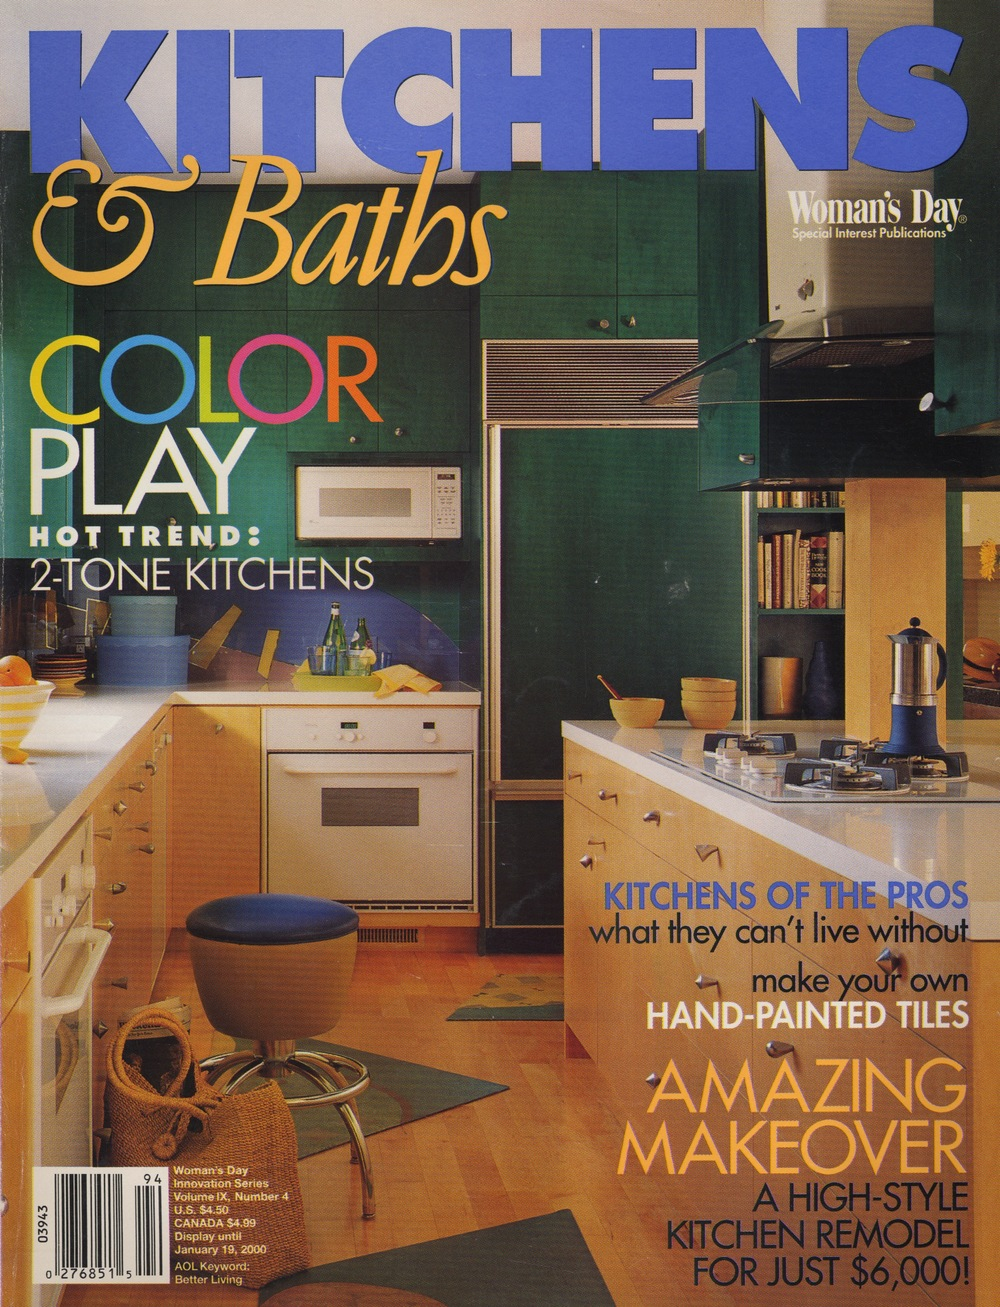 Woman's Day - Kitchens and Baths - Cover.jpg